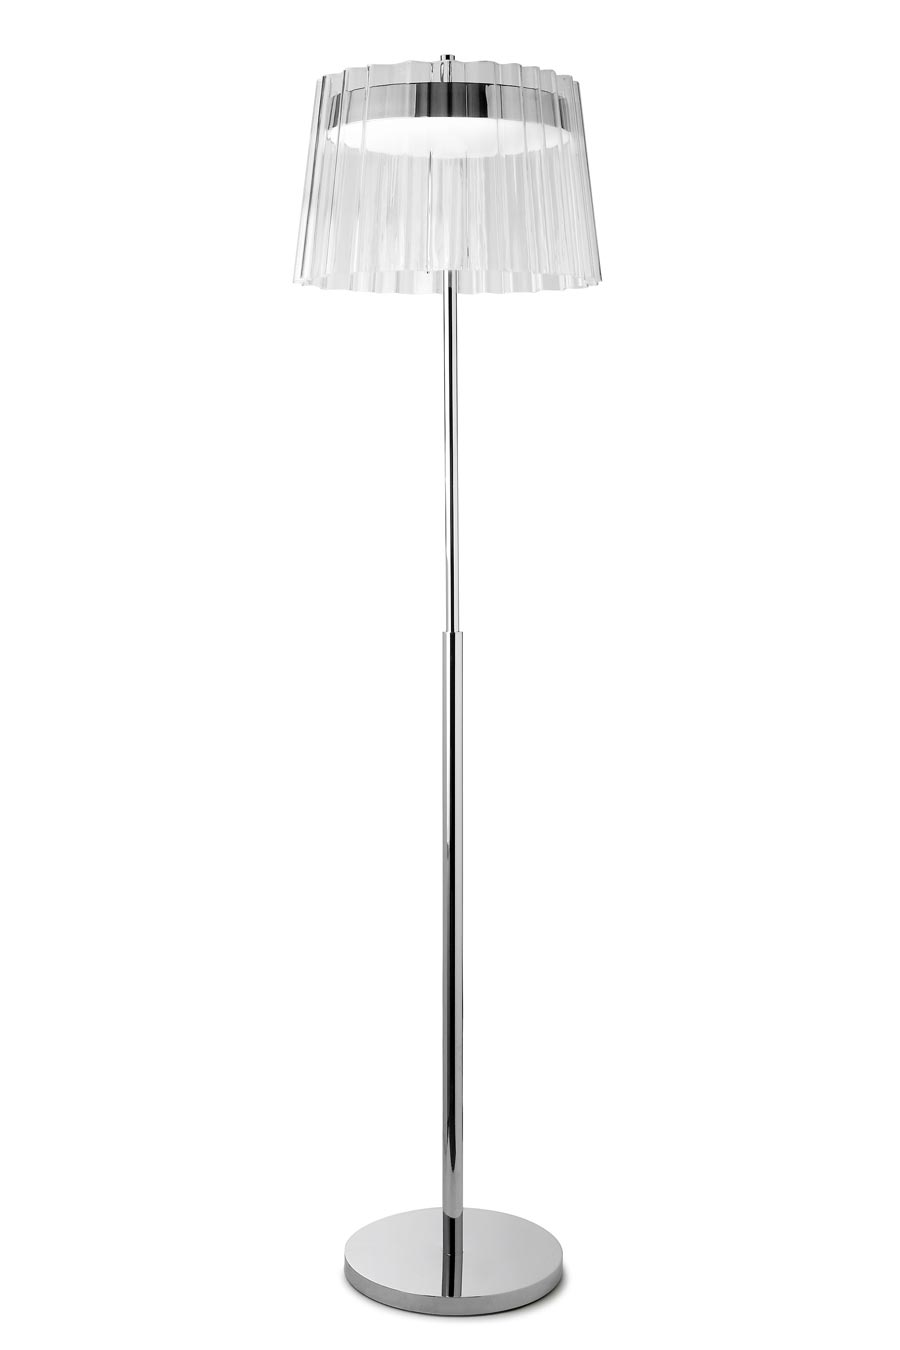 Iris lampadaire design transparent. Leds C4.